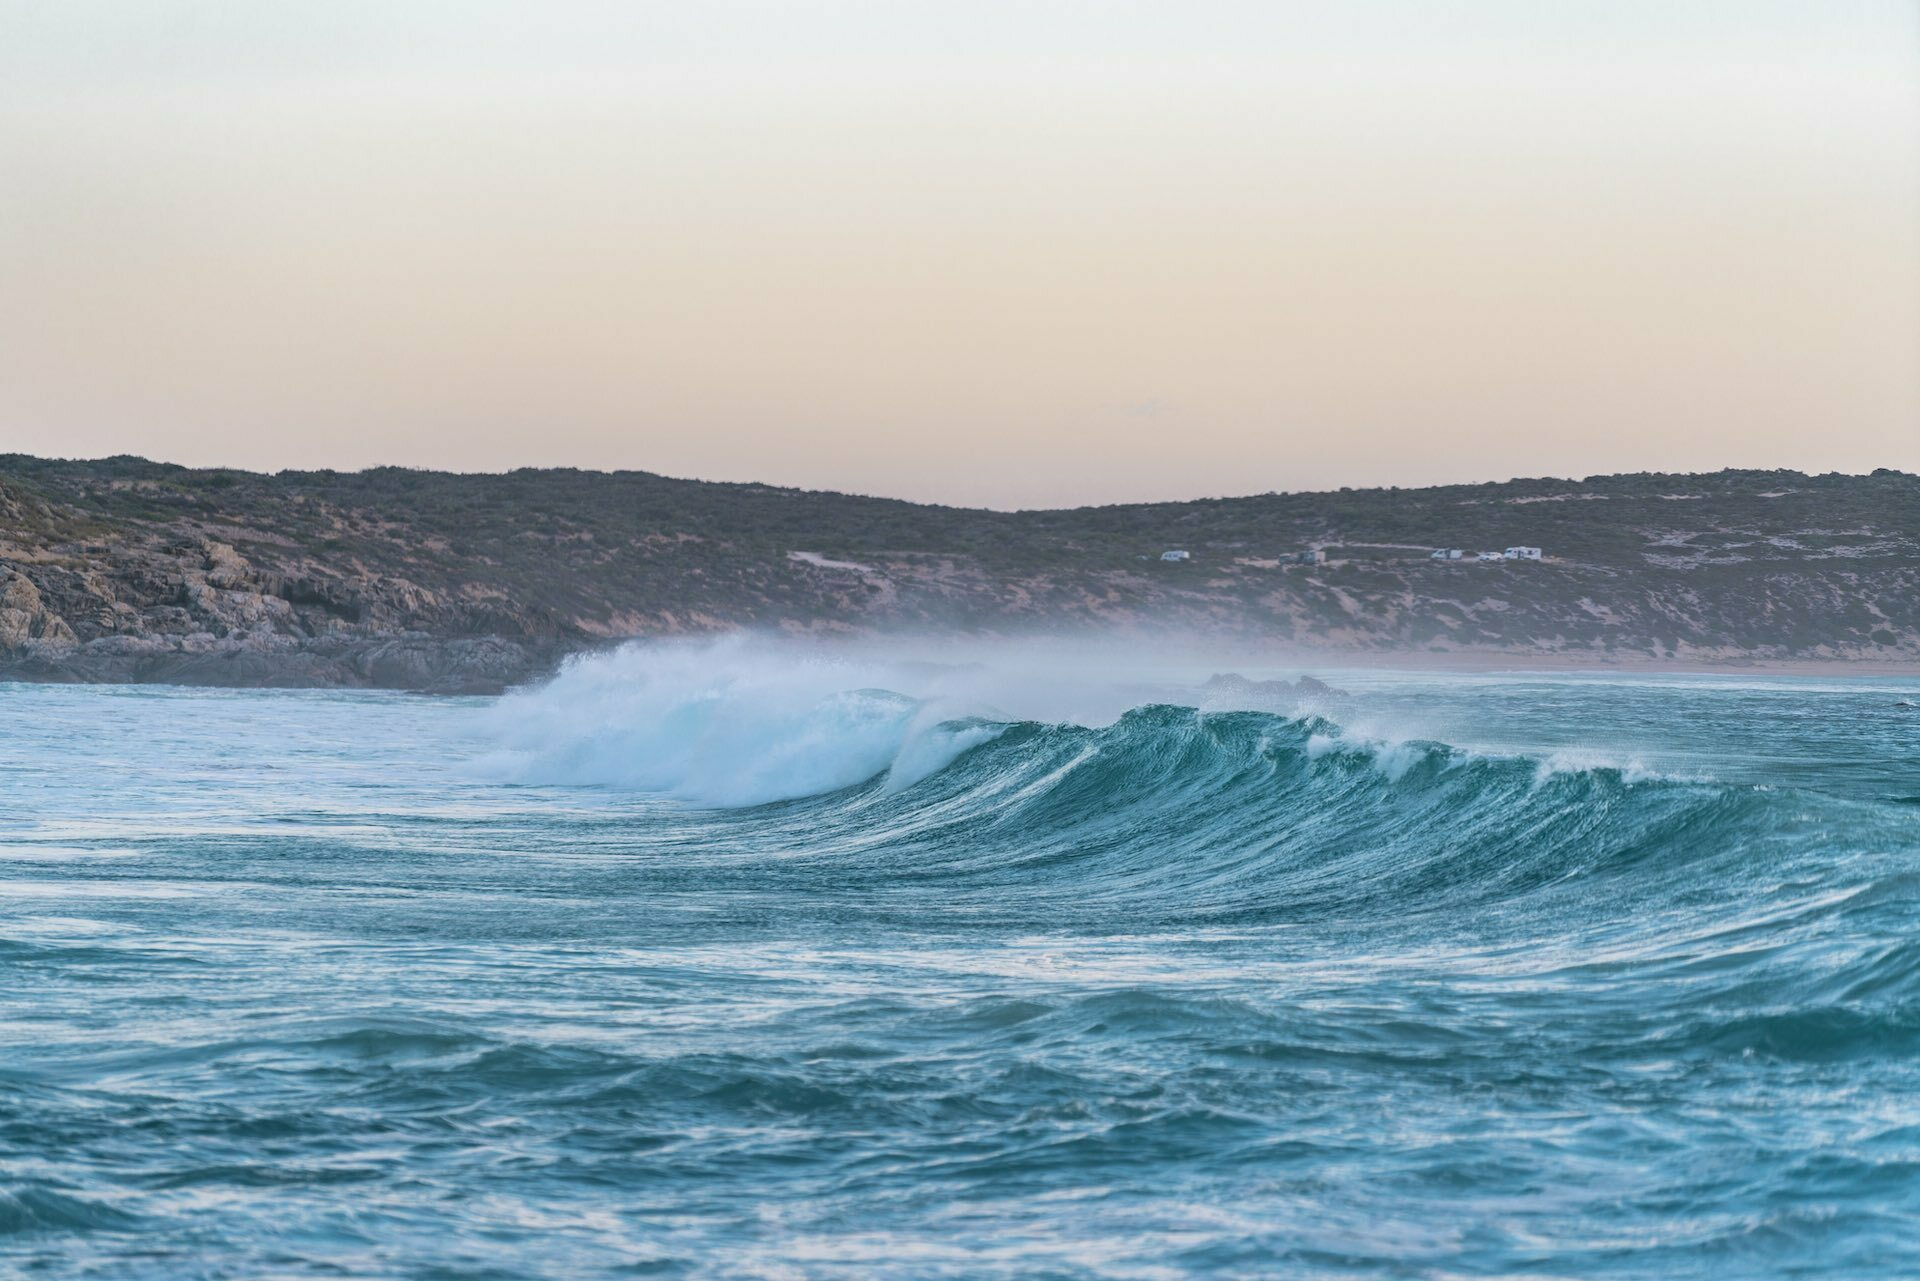 The Eyre Peninsula Will Let You Feel Like the Only Person on Earth - Jayden ONeil, Greenly beach, waves, Eyre Pennisula